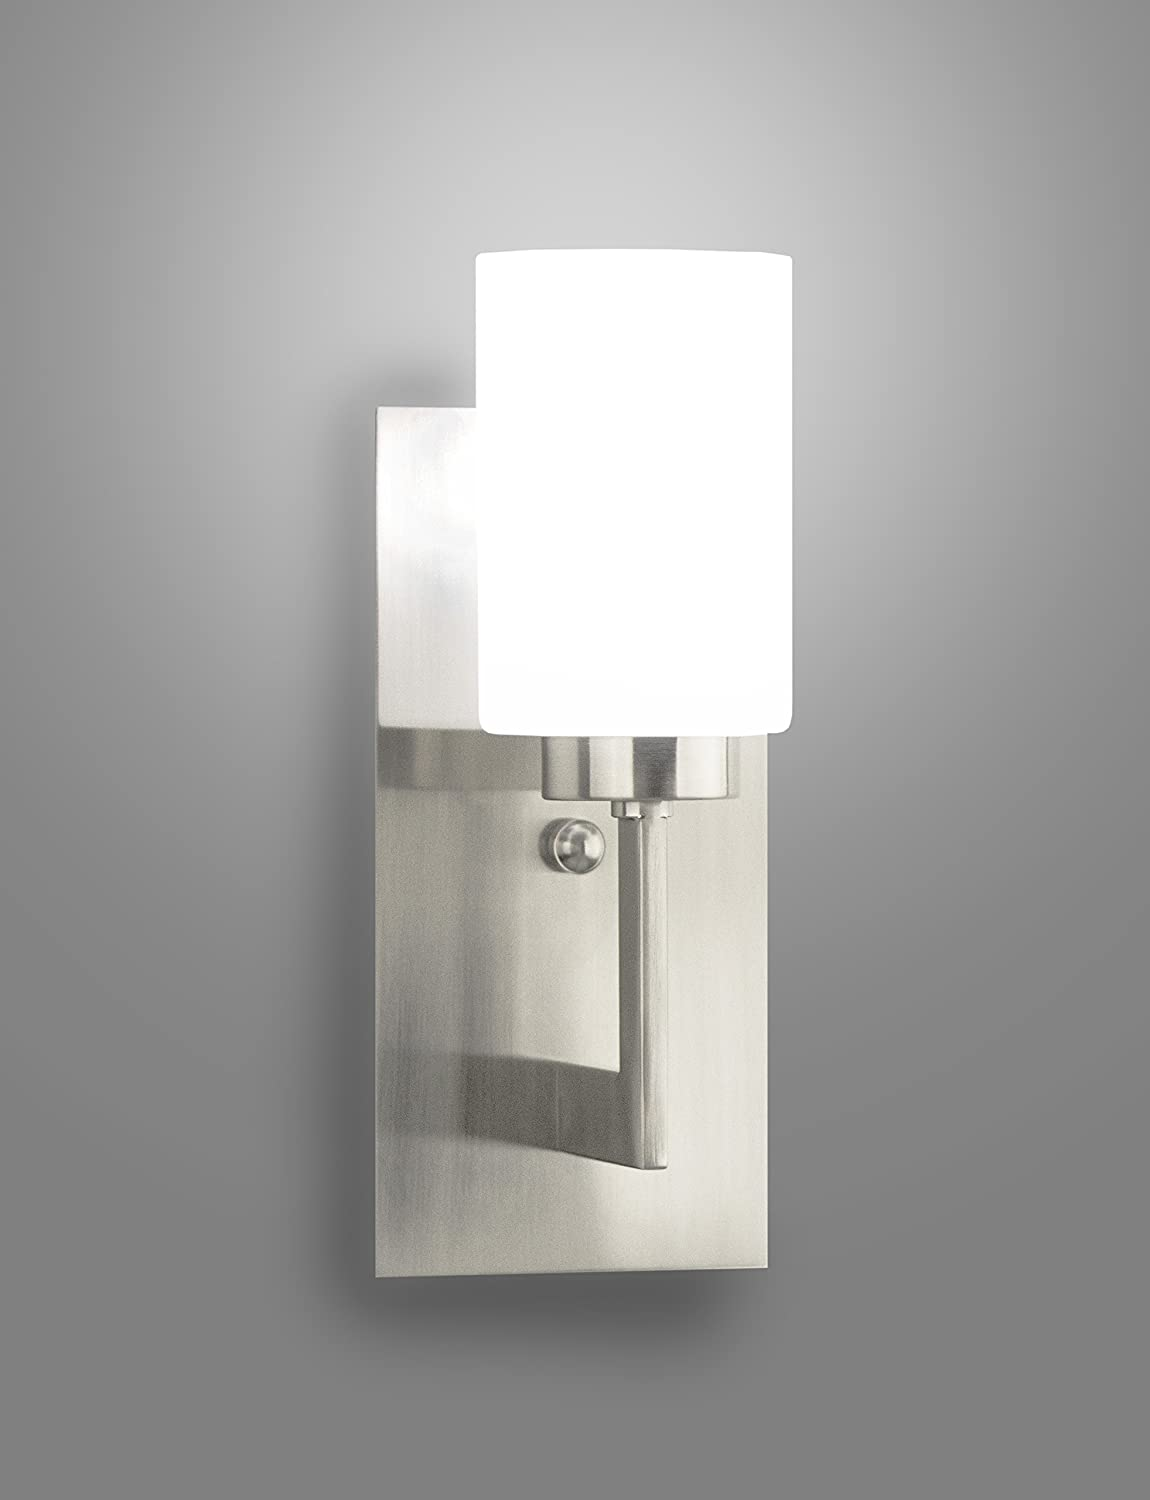 Brio Wall Sconce Light Fixture - Brushed Nickel w/ Frosted Glass ...